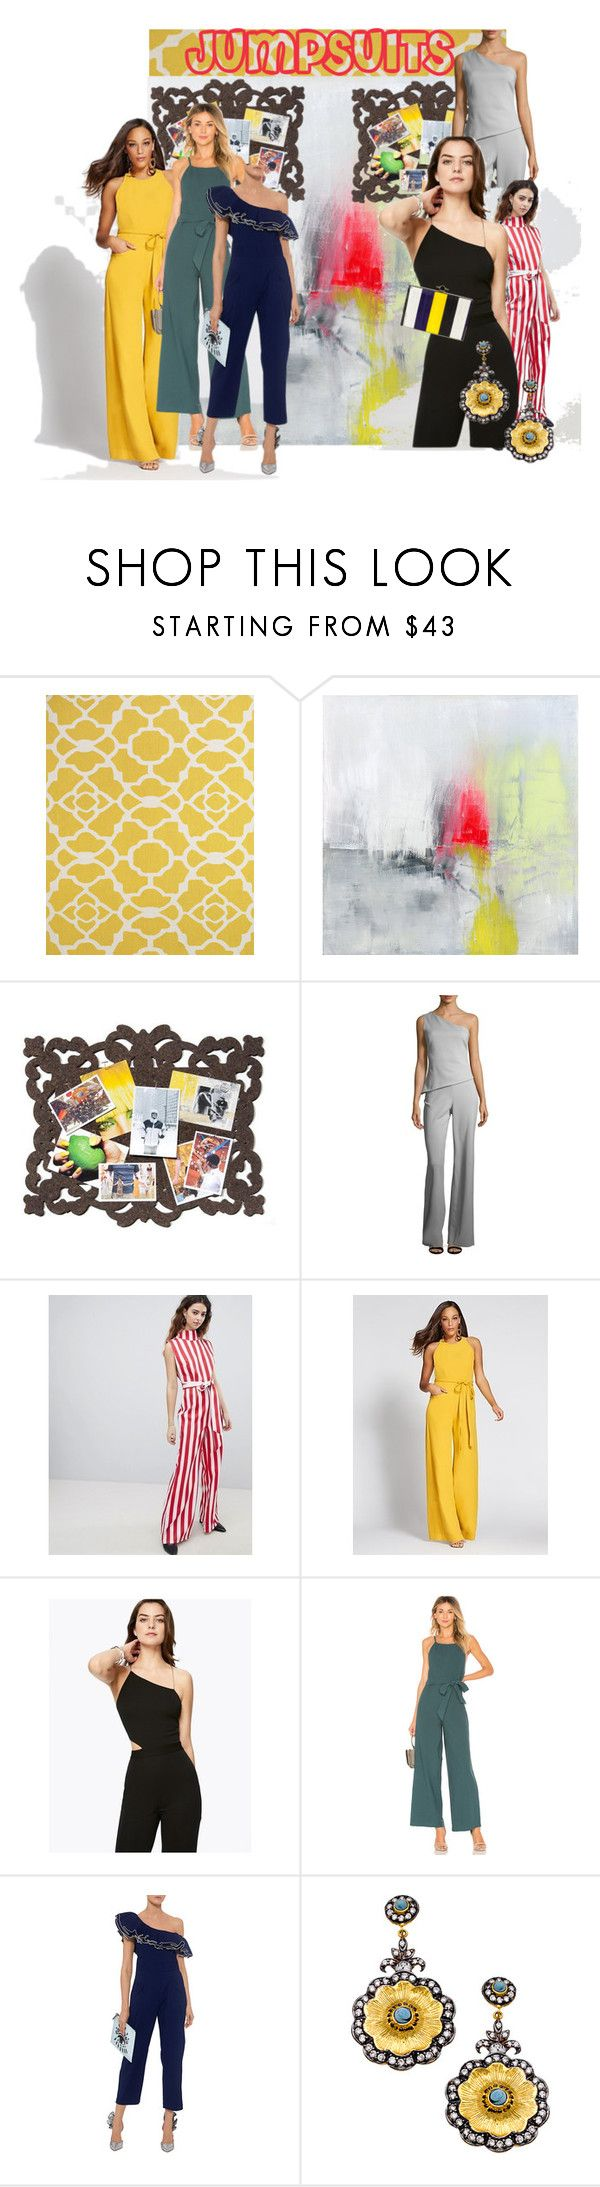 """""""One and Done: Jumpsuits #2"""" by audreyonline ❤ liked on Polyvore featuring BD Fine, Mio, Cushnie Et Ochs, Unique21, New York & Company, Ramy Brook, Line + Dot, Sea, New York, Meghna Designs and Jason Wu"""